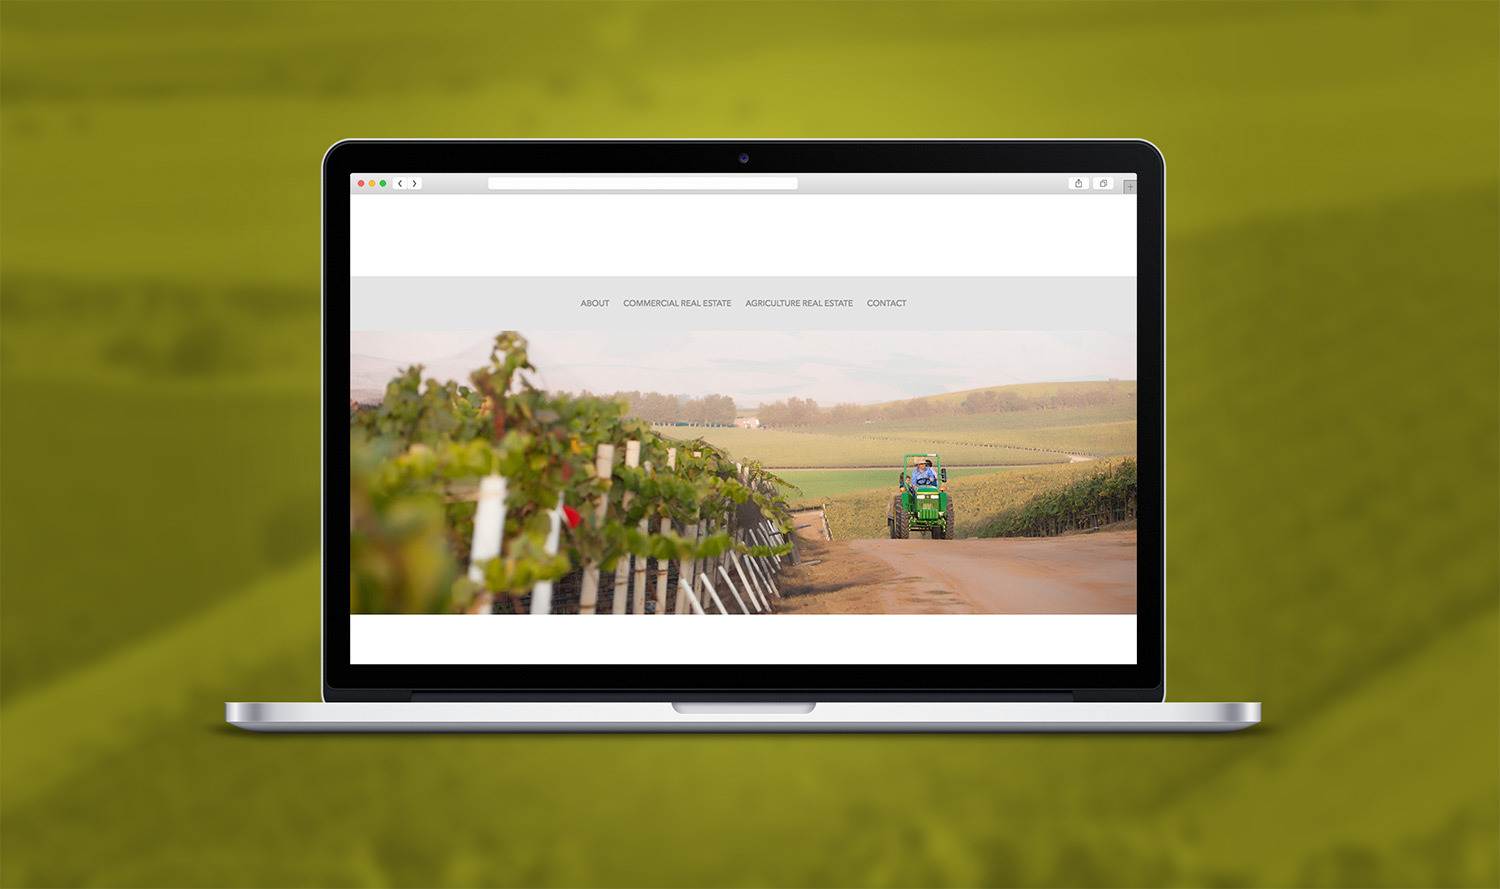 ProPlus logics is the top Agriculture industry Website Design Company